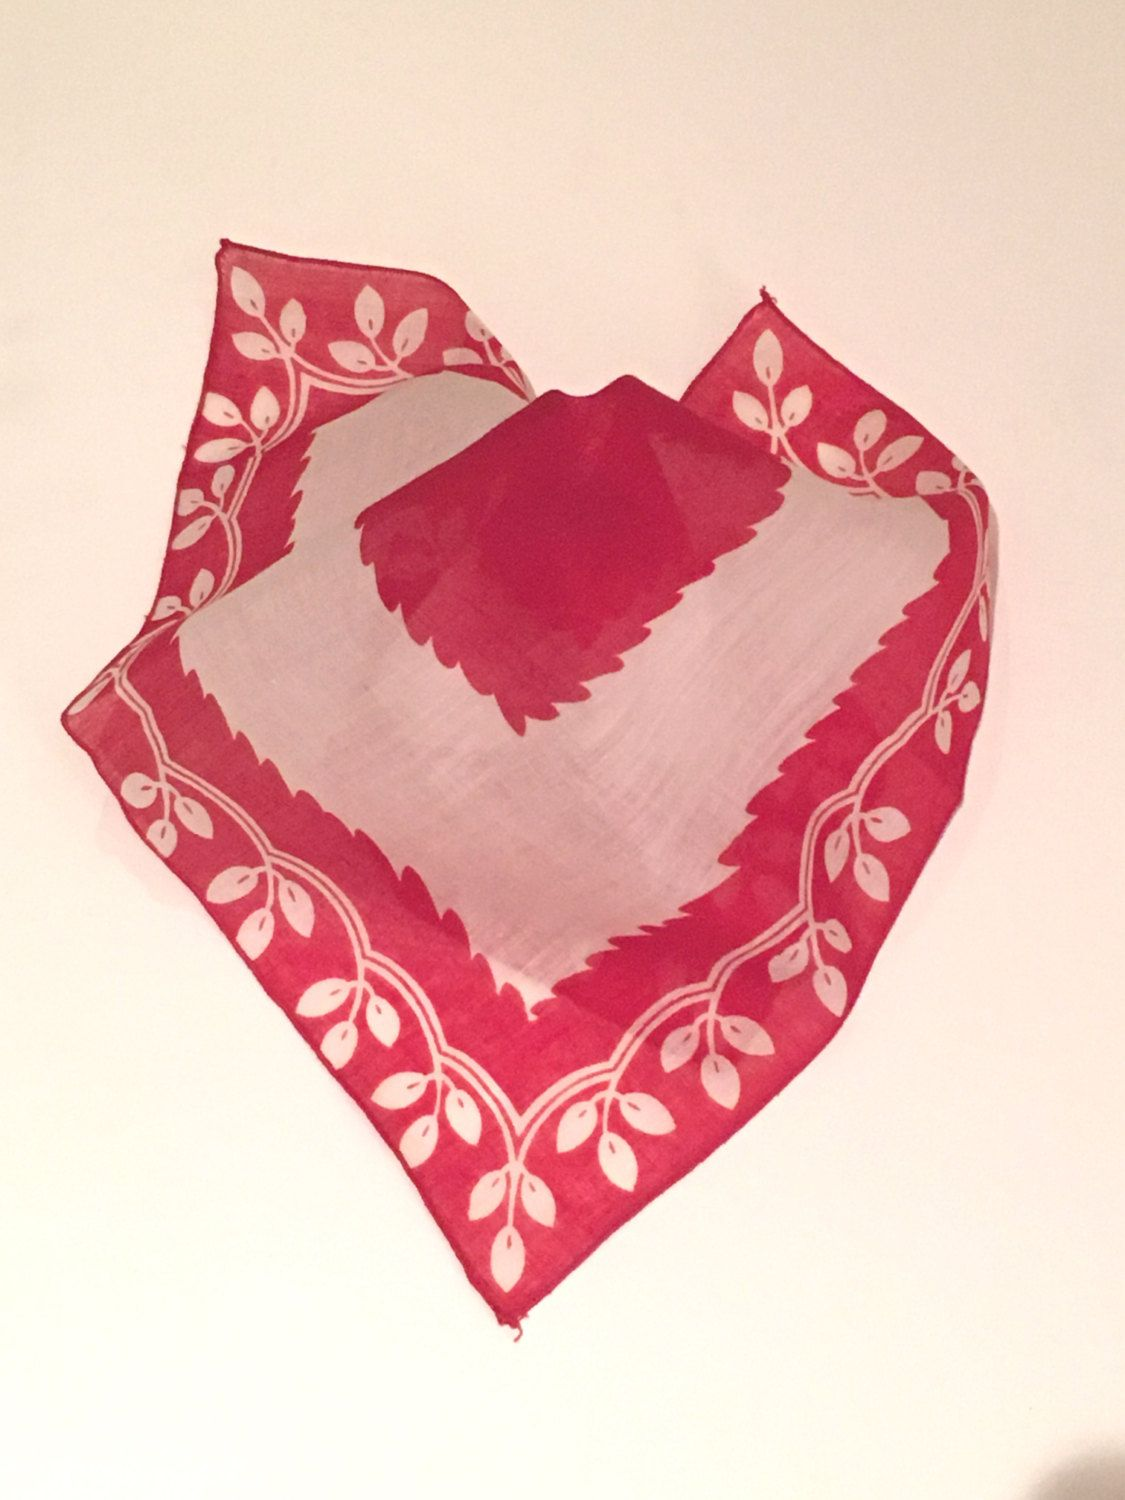 Vintage Red and White Handkerchief, Leaf Pattern, Valentine Handkerchief, Red Handkerchief by CobbledStreets on Etsy